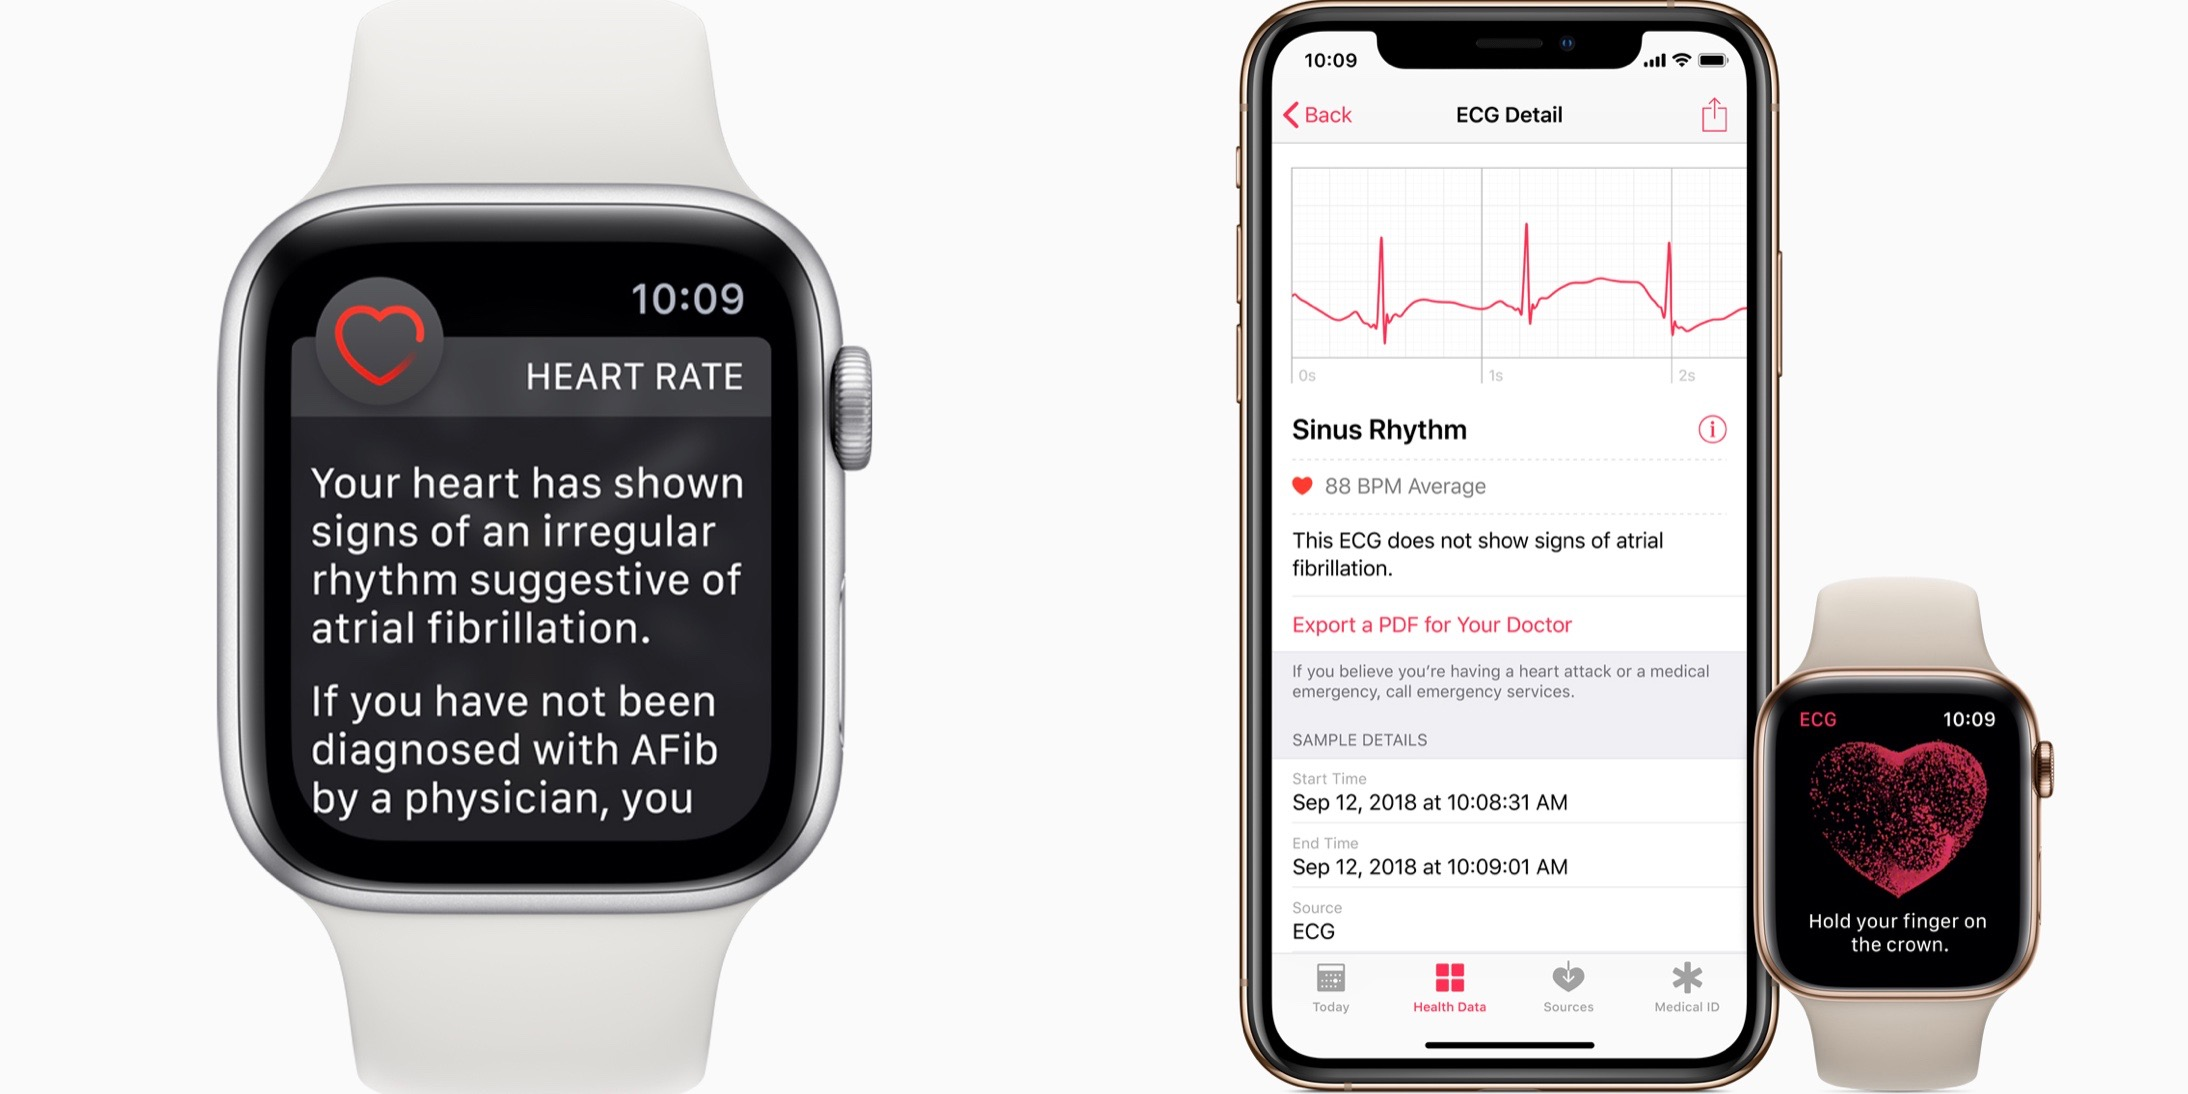 How do you set a picture on your apple watch